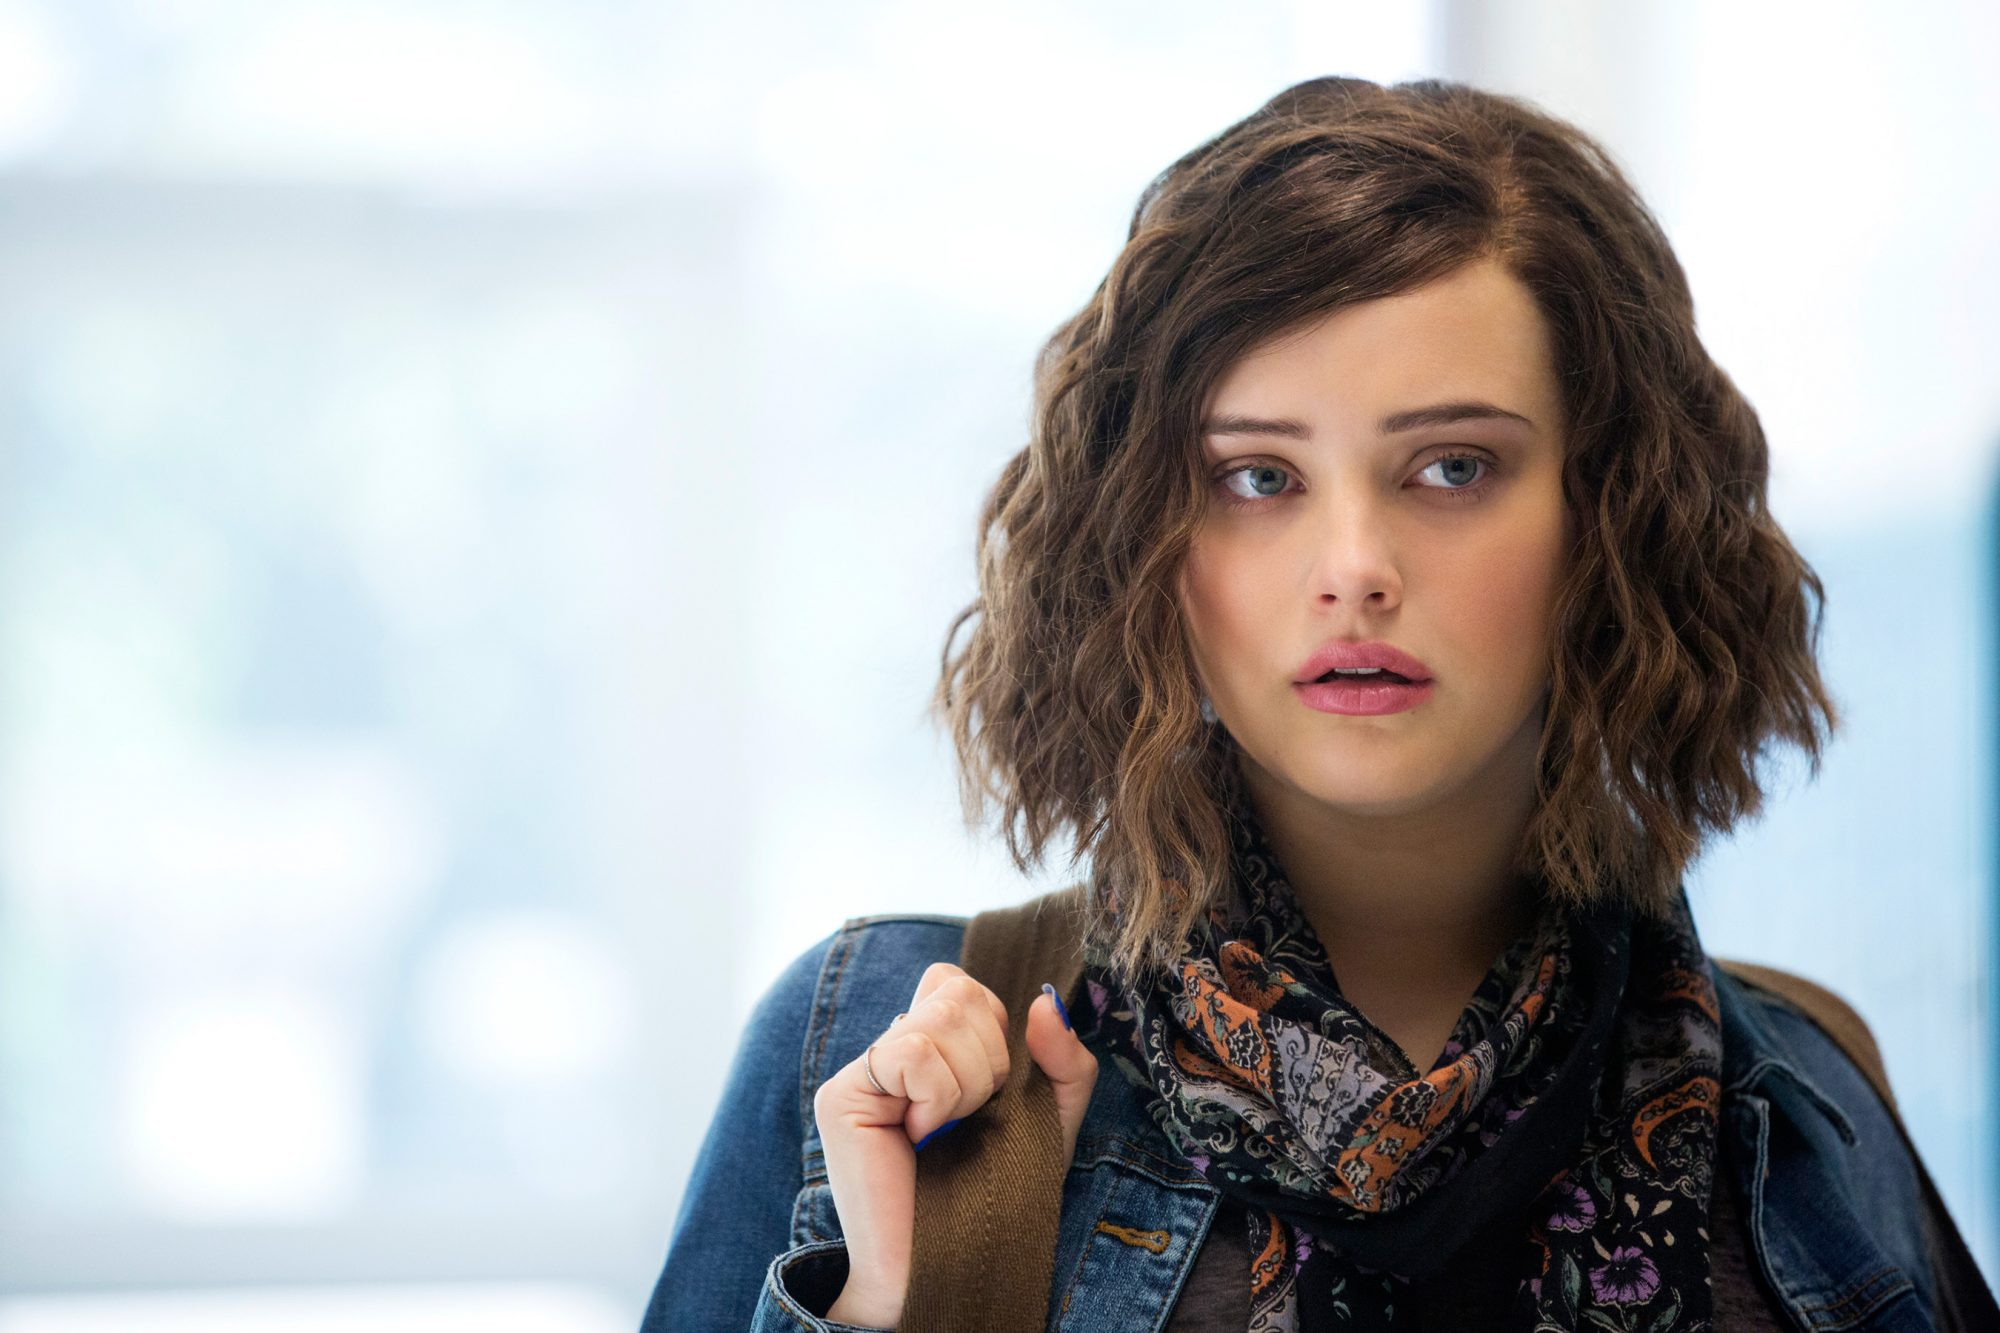 Katherine Langford as Hannah Baker